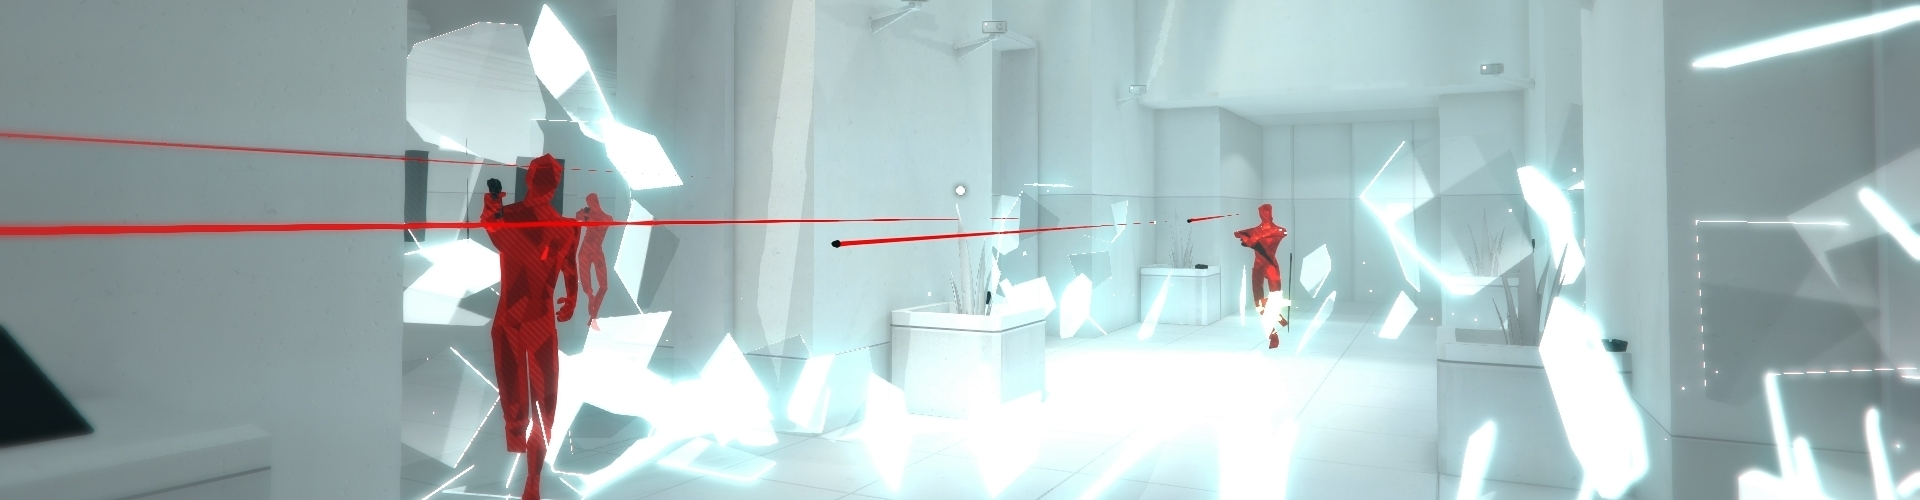 Superhot im Test: Supergut und superkurz - innovativer Shooter im Video-Review